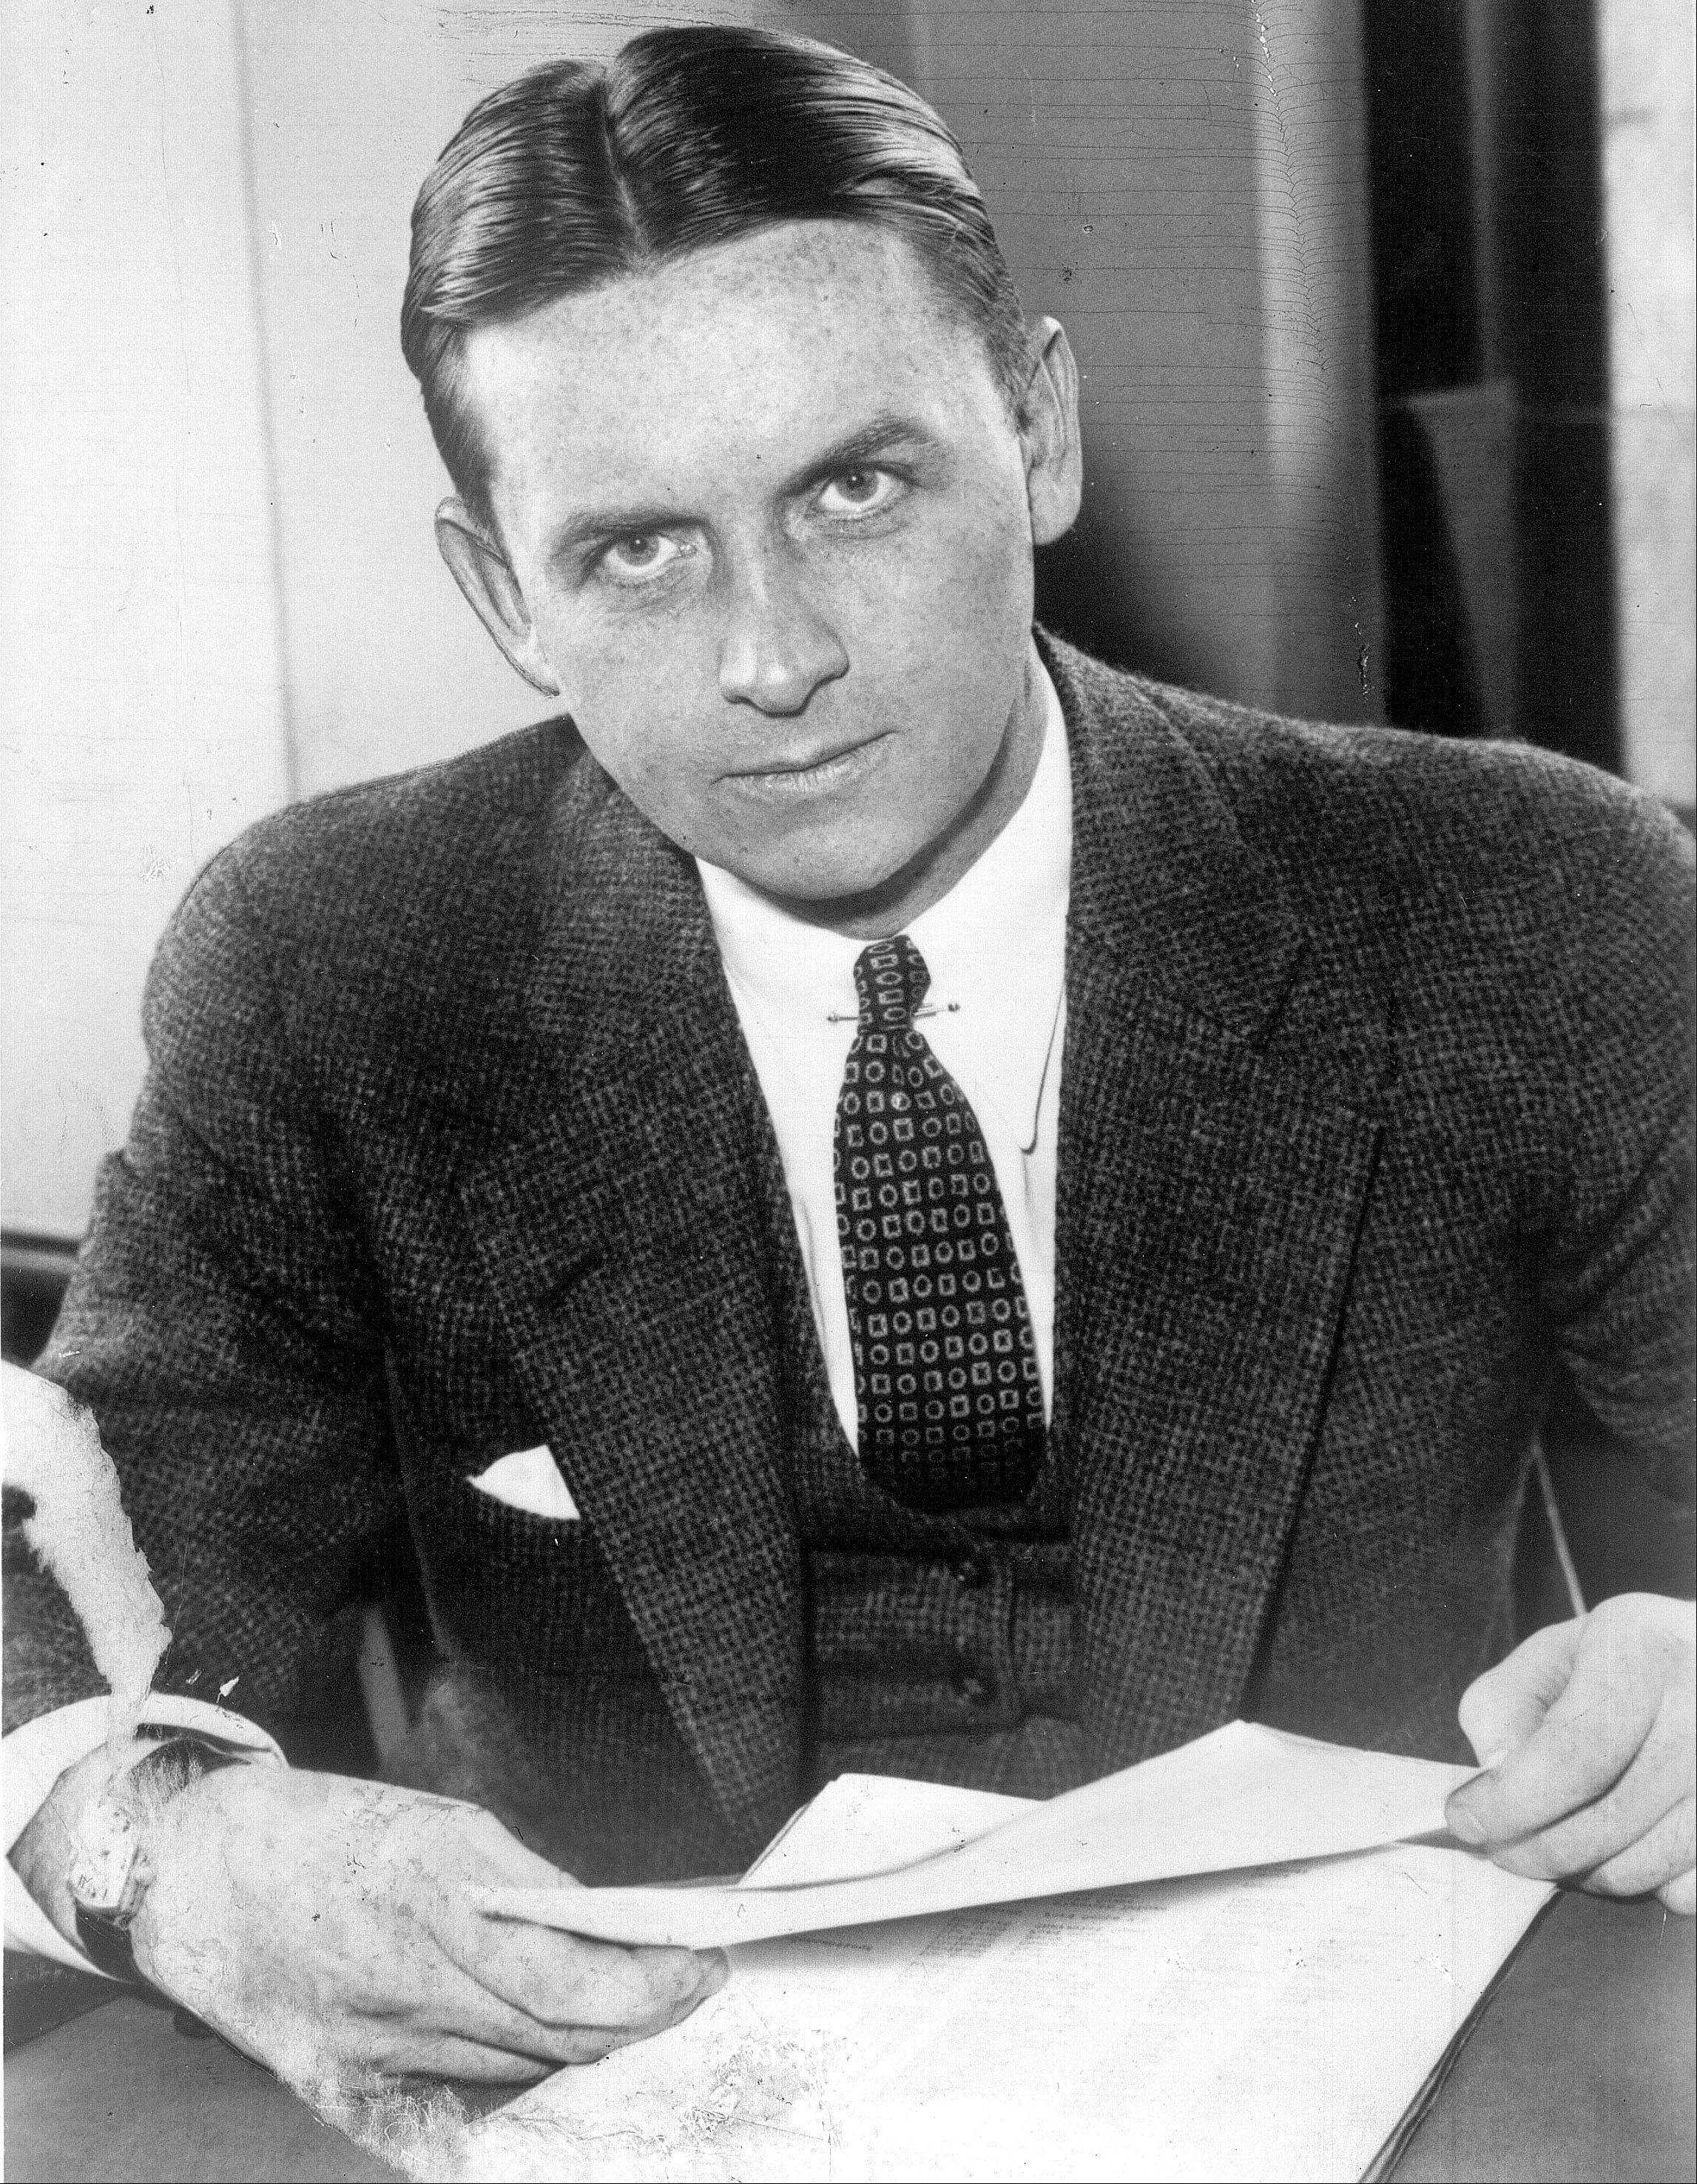 This undated file photo shows Eliot Ness in Cleveland. Portrayed over the years by Kevin Costner and Robert Stack as an incorruptible hero, Ness' legend is now at risk, with some claiming his role in taking out Chicago mobster Al Capone is as mythical as Mrs. OíLeary's cow starting the Great Chicago Fire.